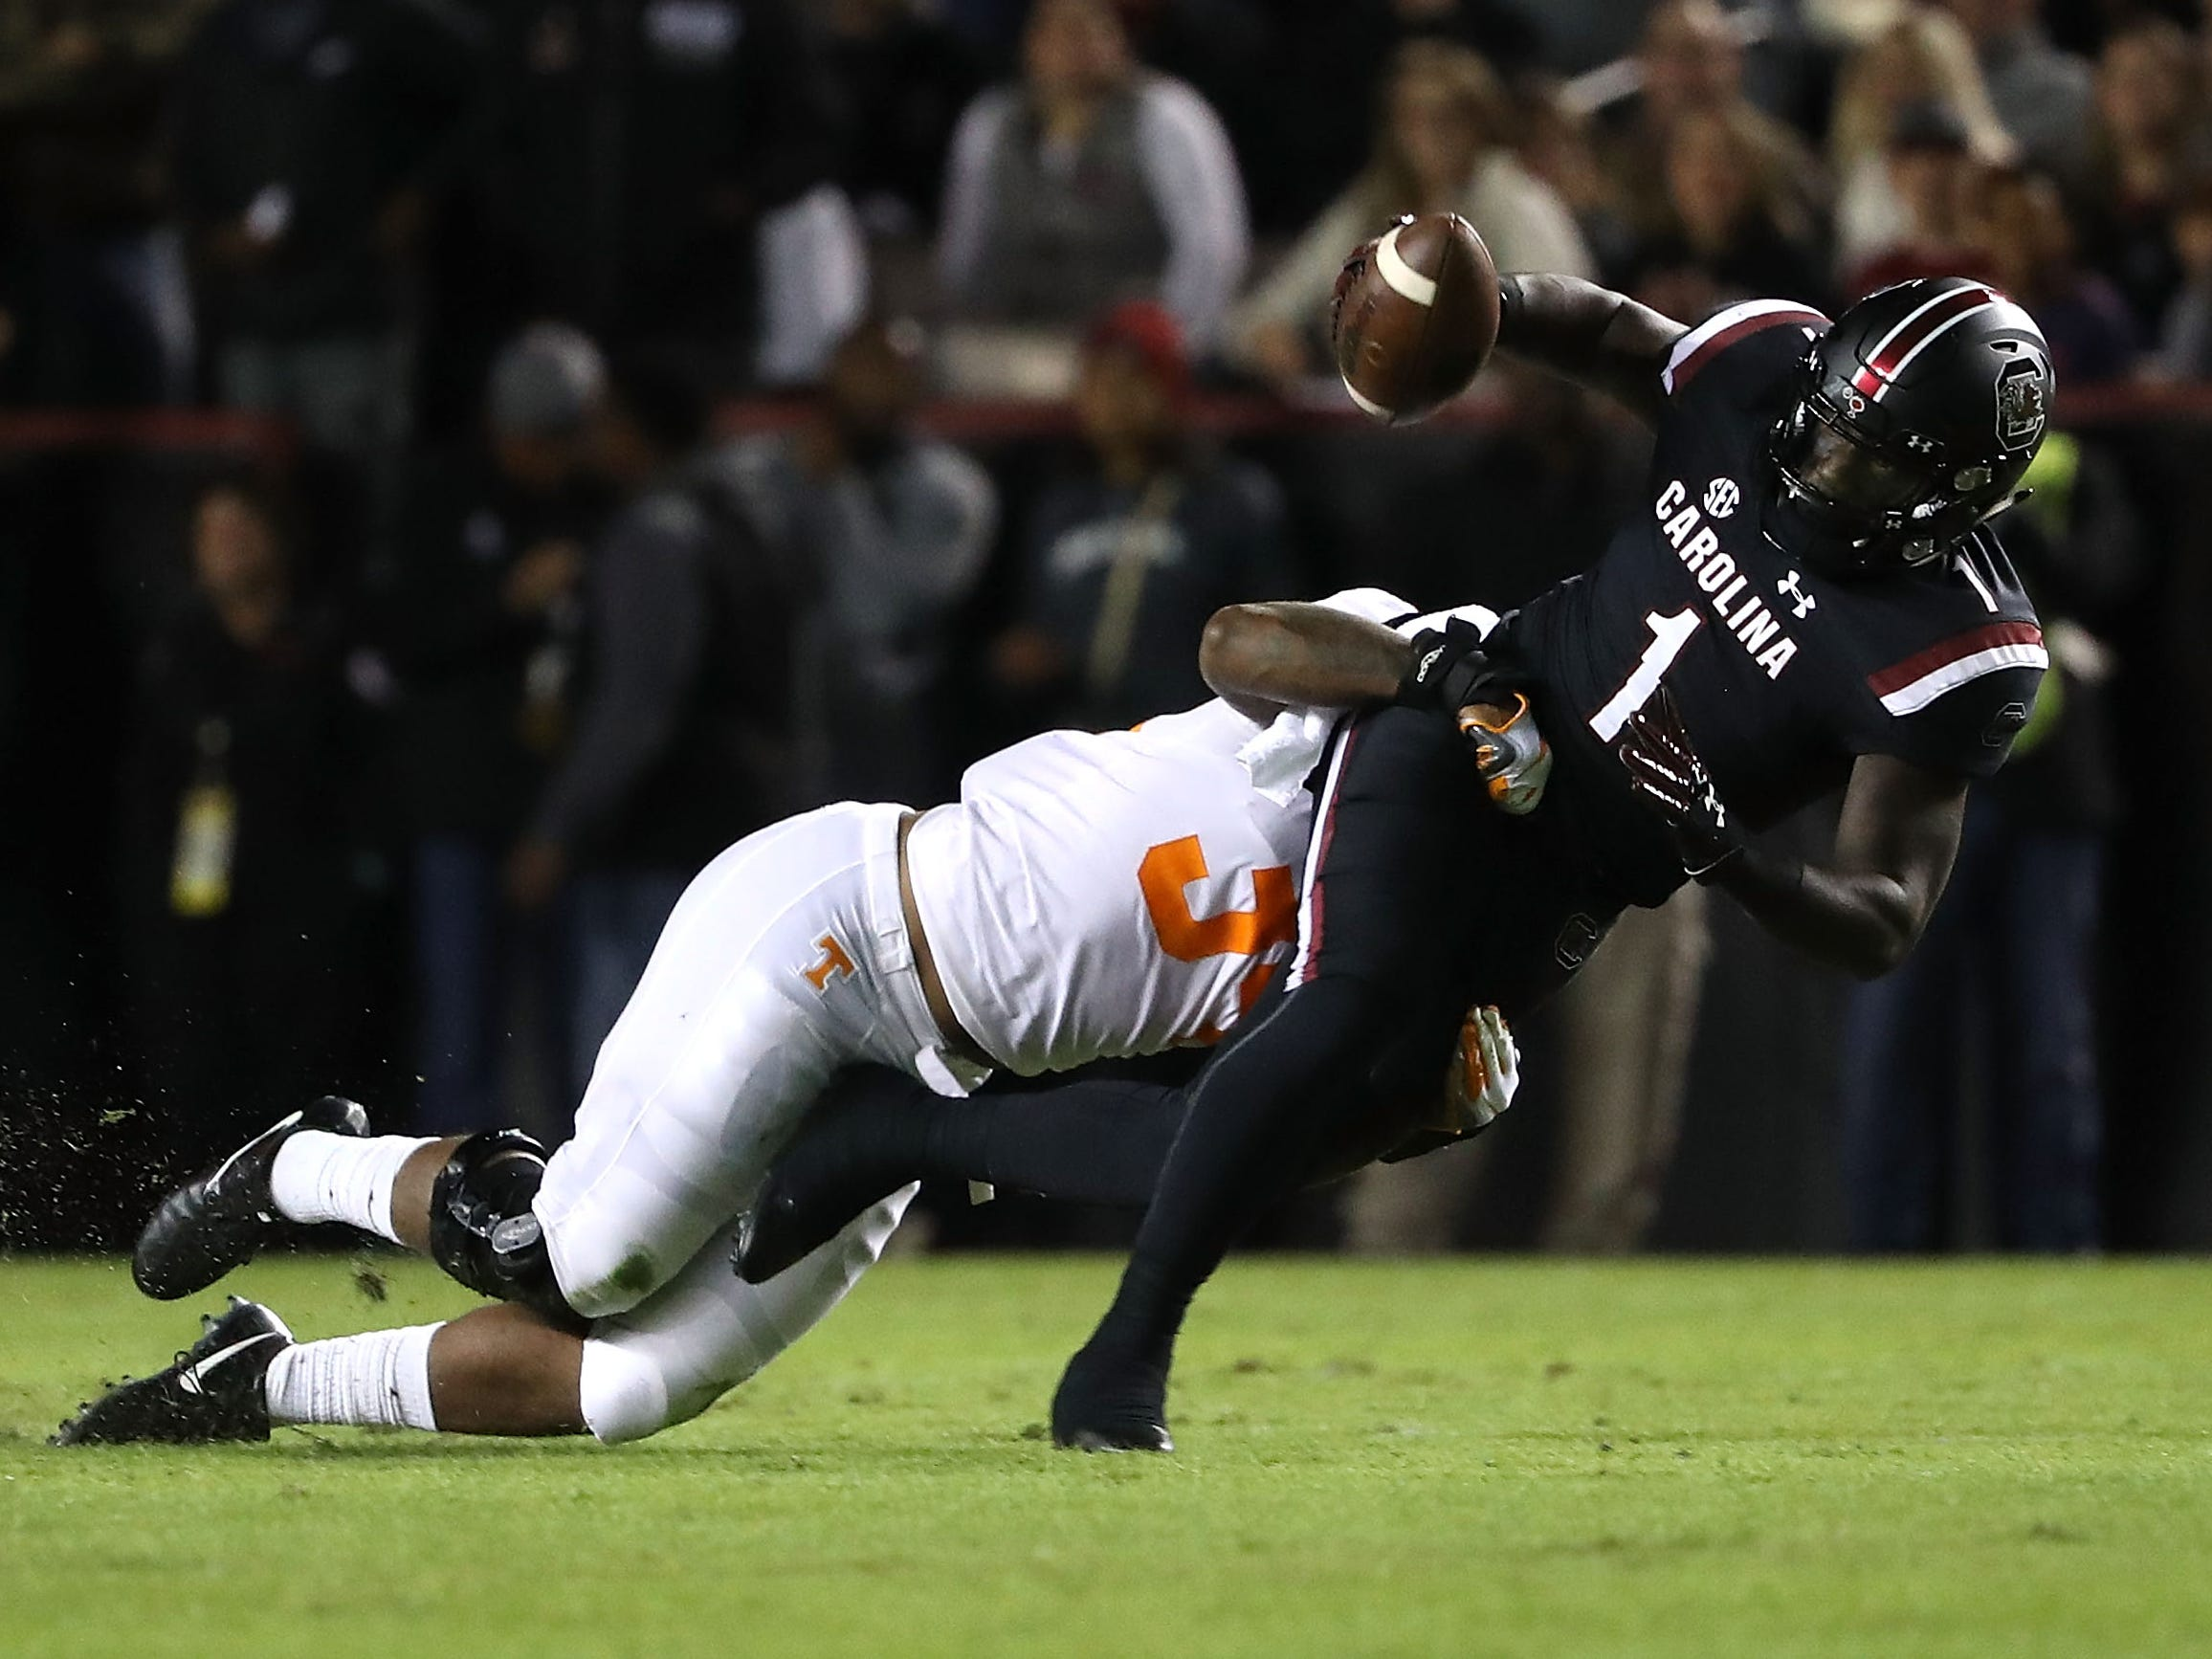 46. Deebo Samuel, WR, South Carolina: More quick than fast, Samuel is the type of receiver who can get quick separation (something the Lions lack) and turn a short catch into a healthy gain by making a tacker or two miss. Not the biggest receiver, he's probably destined to spend most of his time in the slot. Can also return kicks.